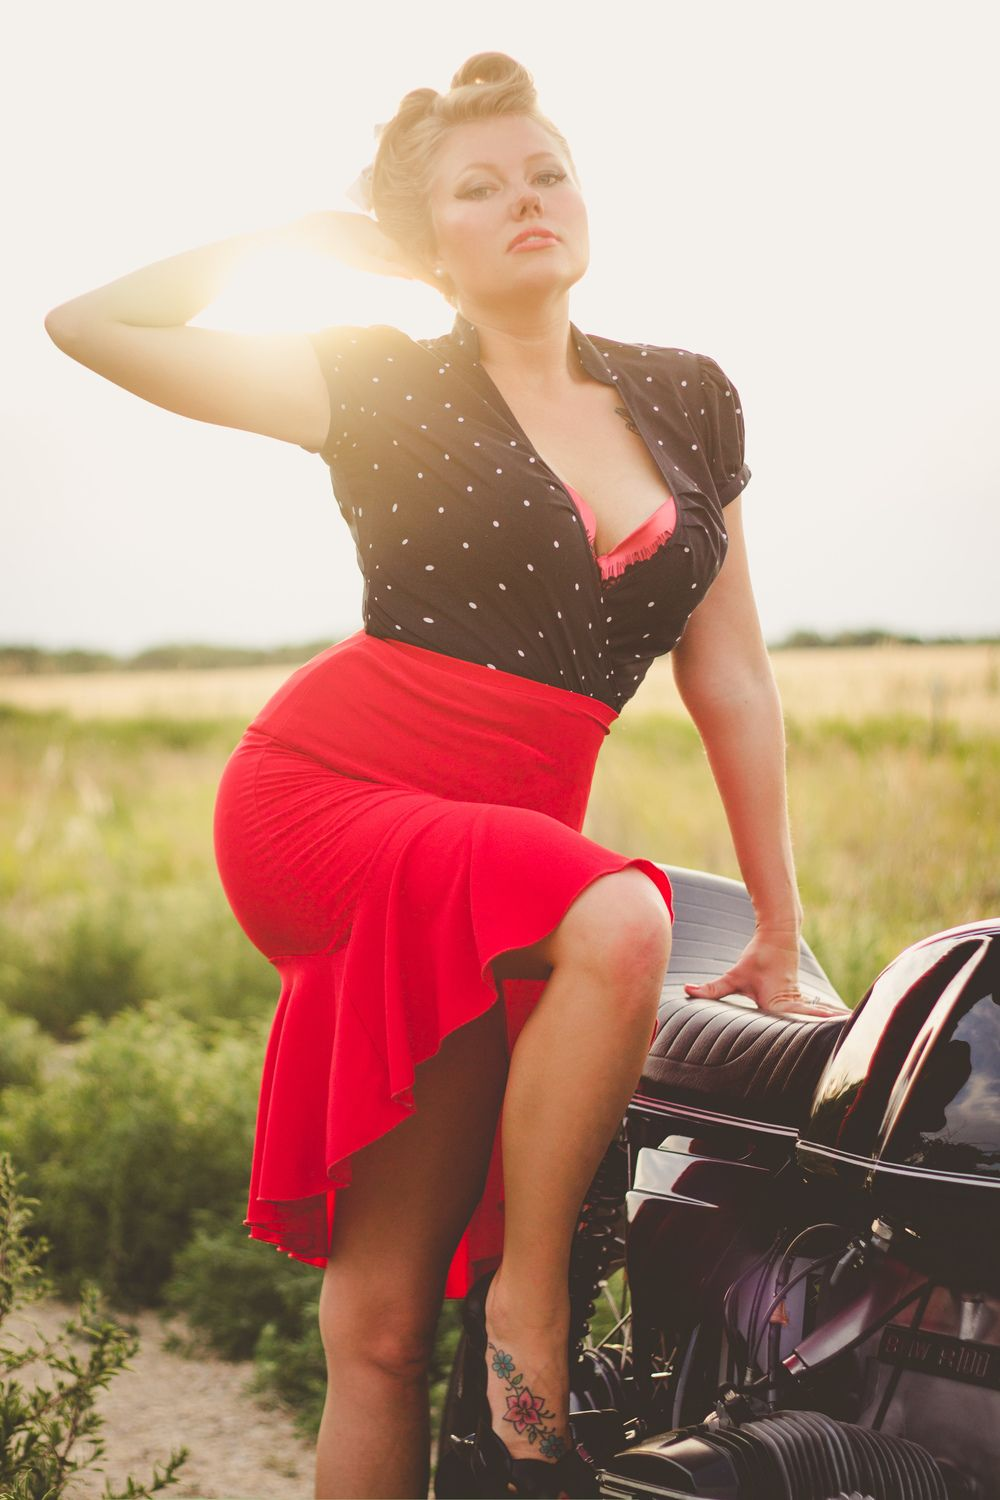 monicadellphotography.com Pin up Beauty session Rockabilly vintage photoshoot